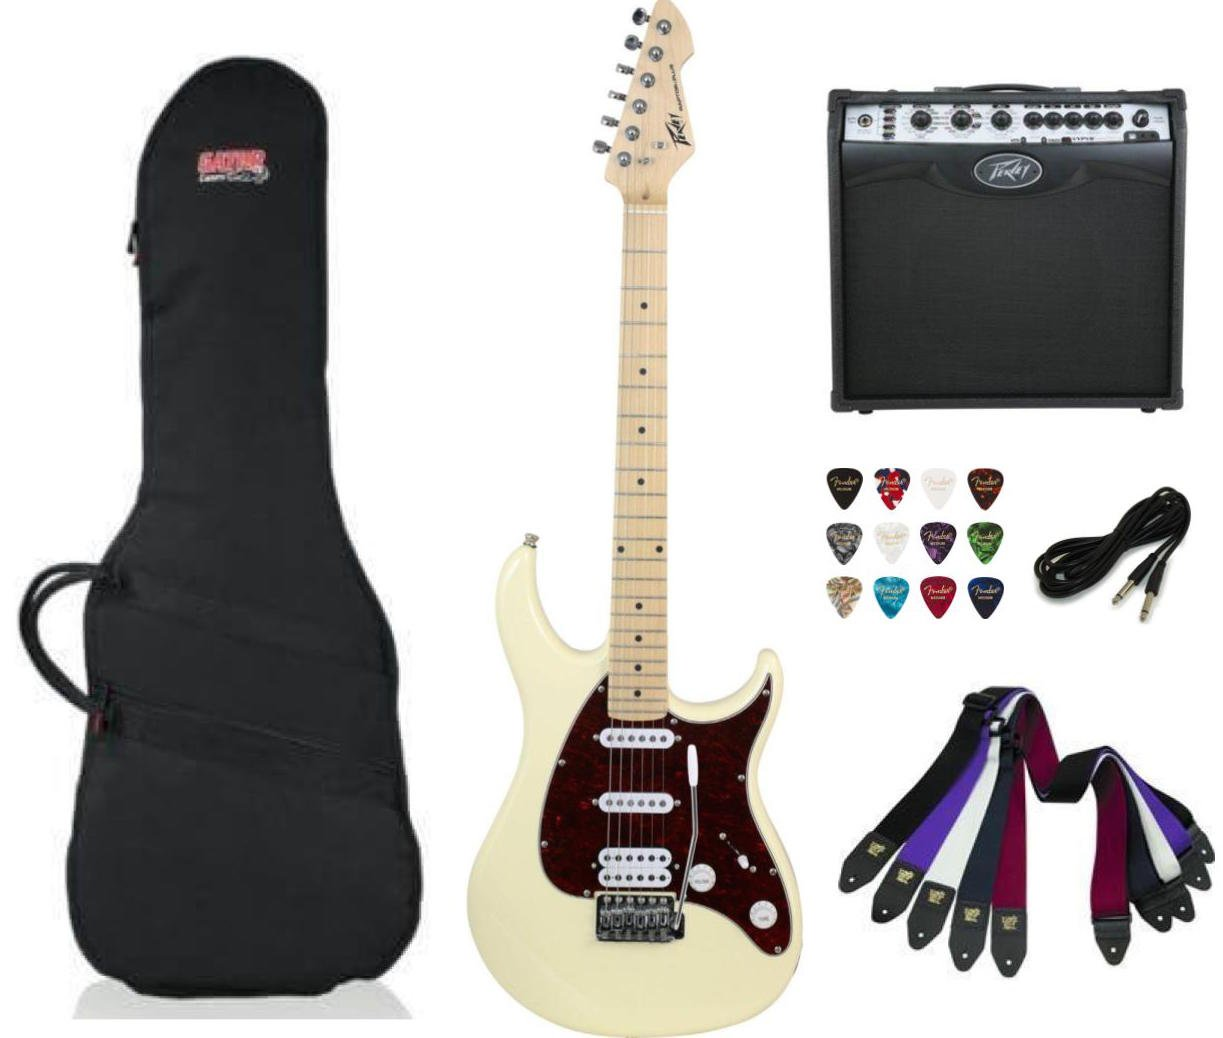 Peavey Raptor Plus Electric Guitar SSH - Ivory Package Deal with Amplifier, Gig Bag, Cable, Straps and Picks